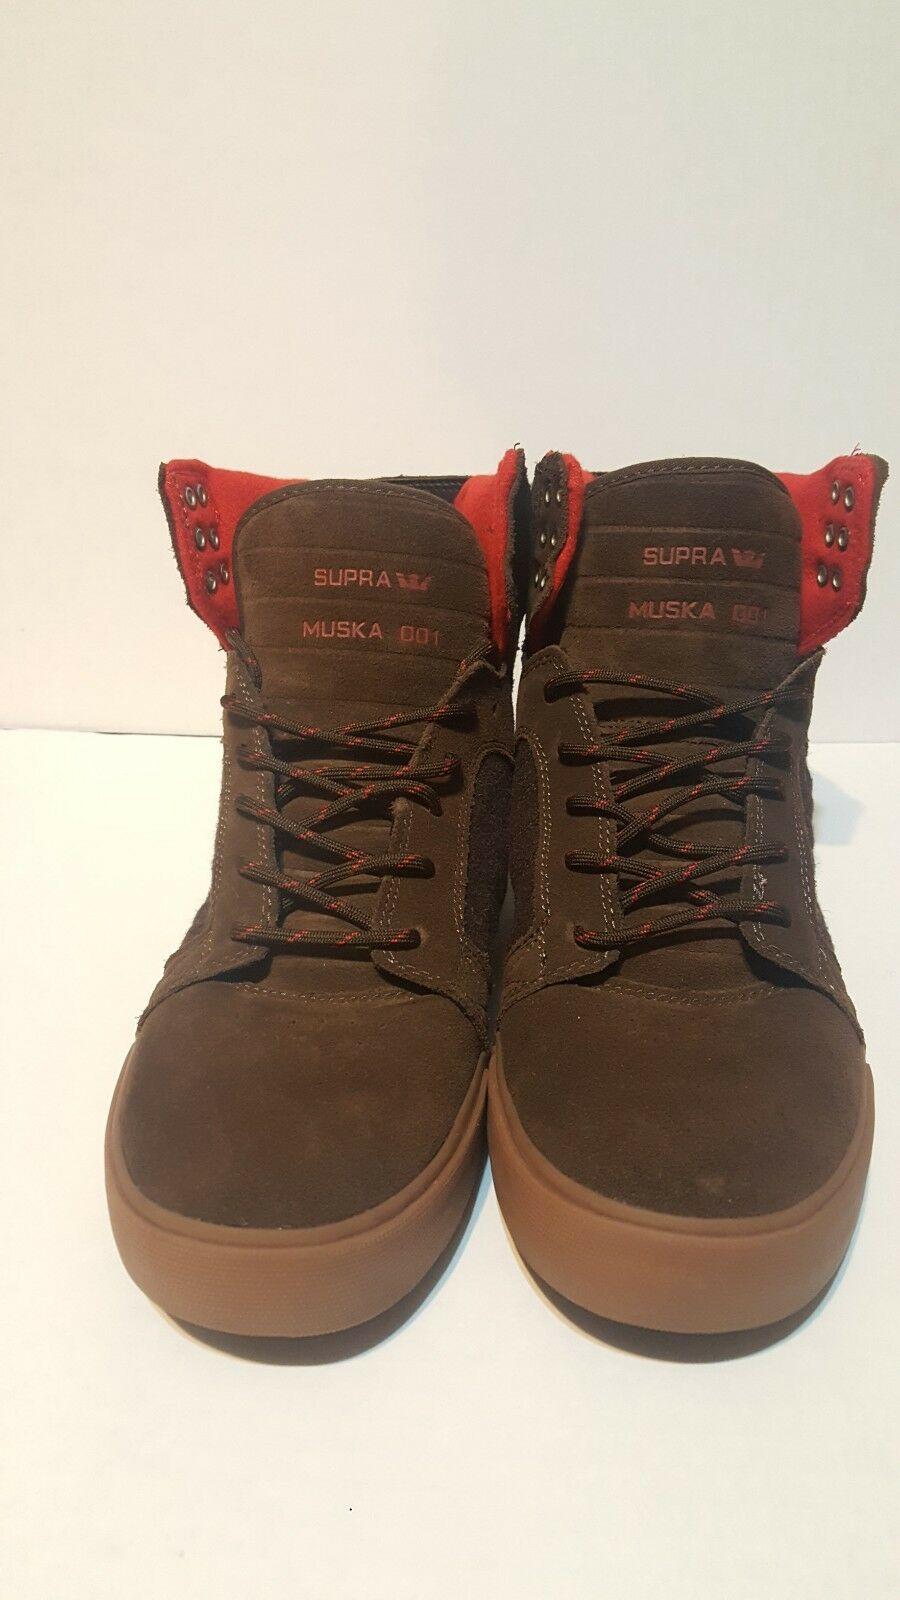 Supra Skytop shoes, brown-red, Size 10 Regular US Muska 001